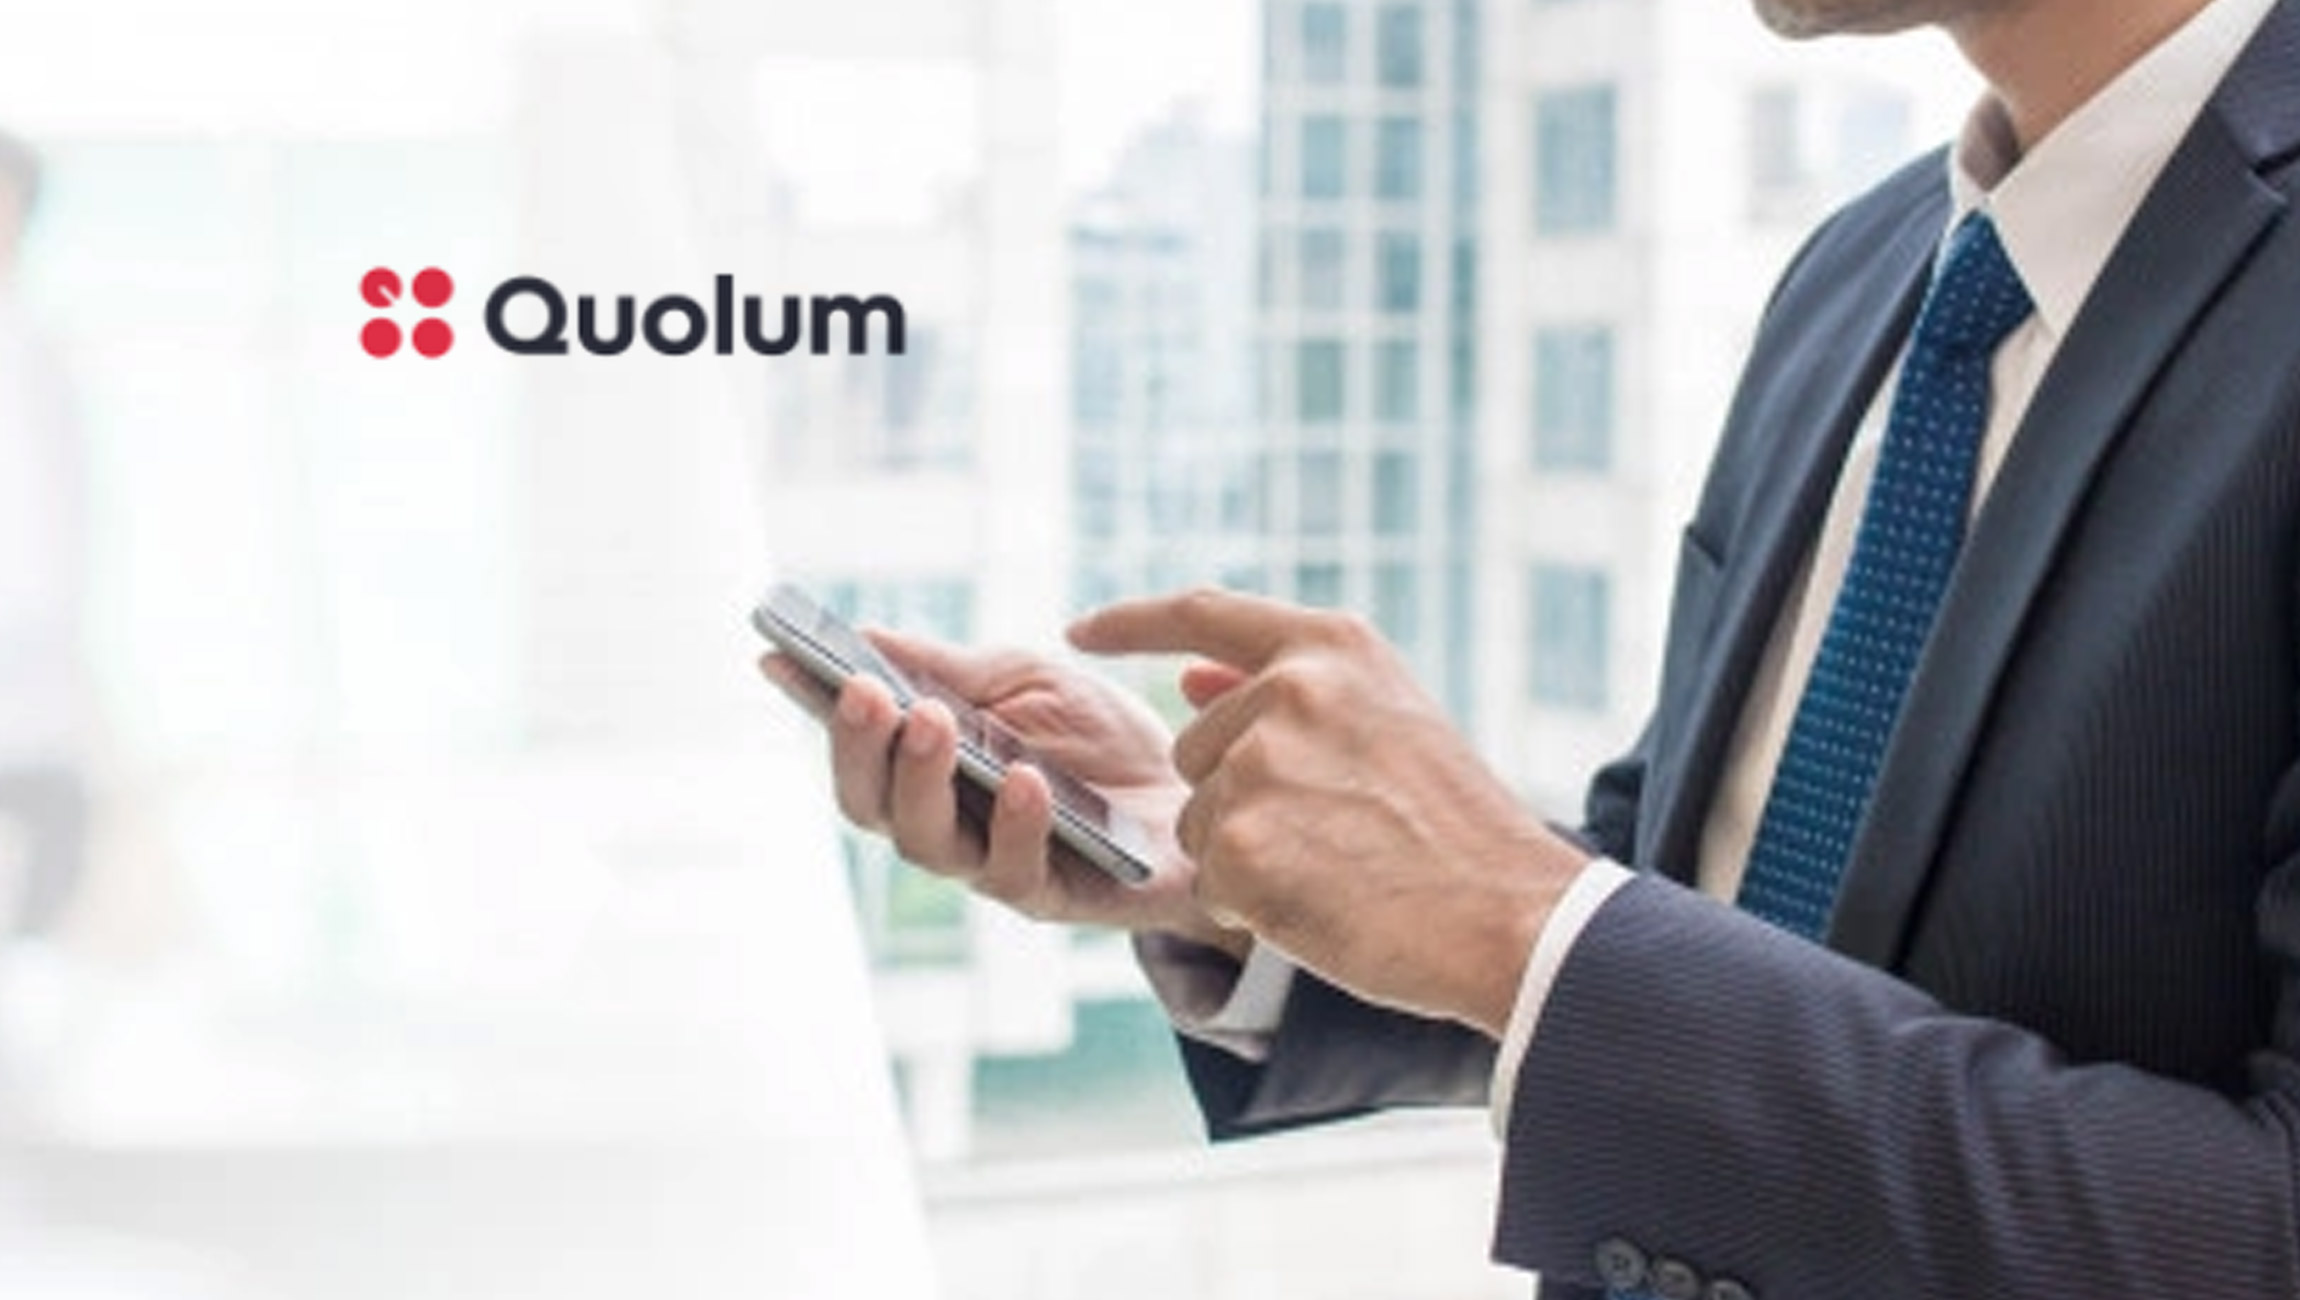 Quolum-Introduces-the-World's-Only-Expense-Card-for-Purchasing-and-Managing-SaaS-Subscriptions